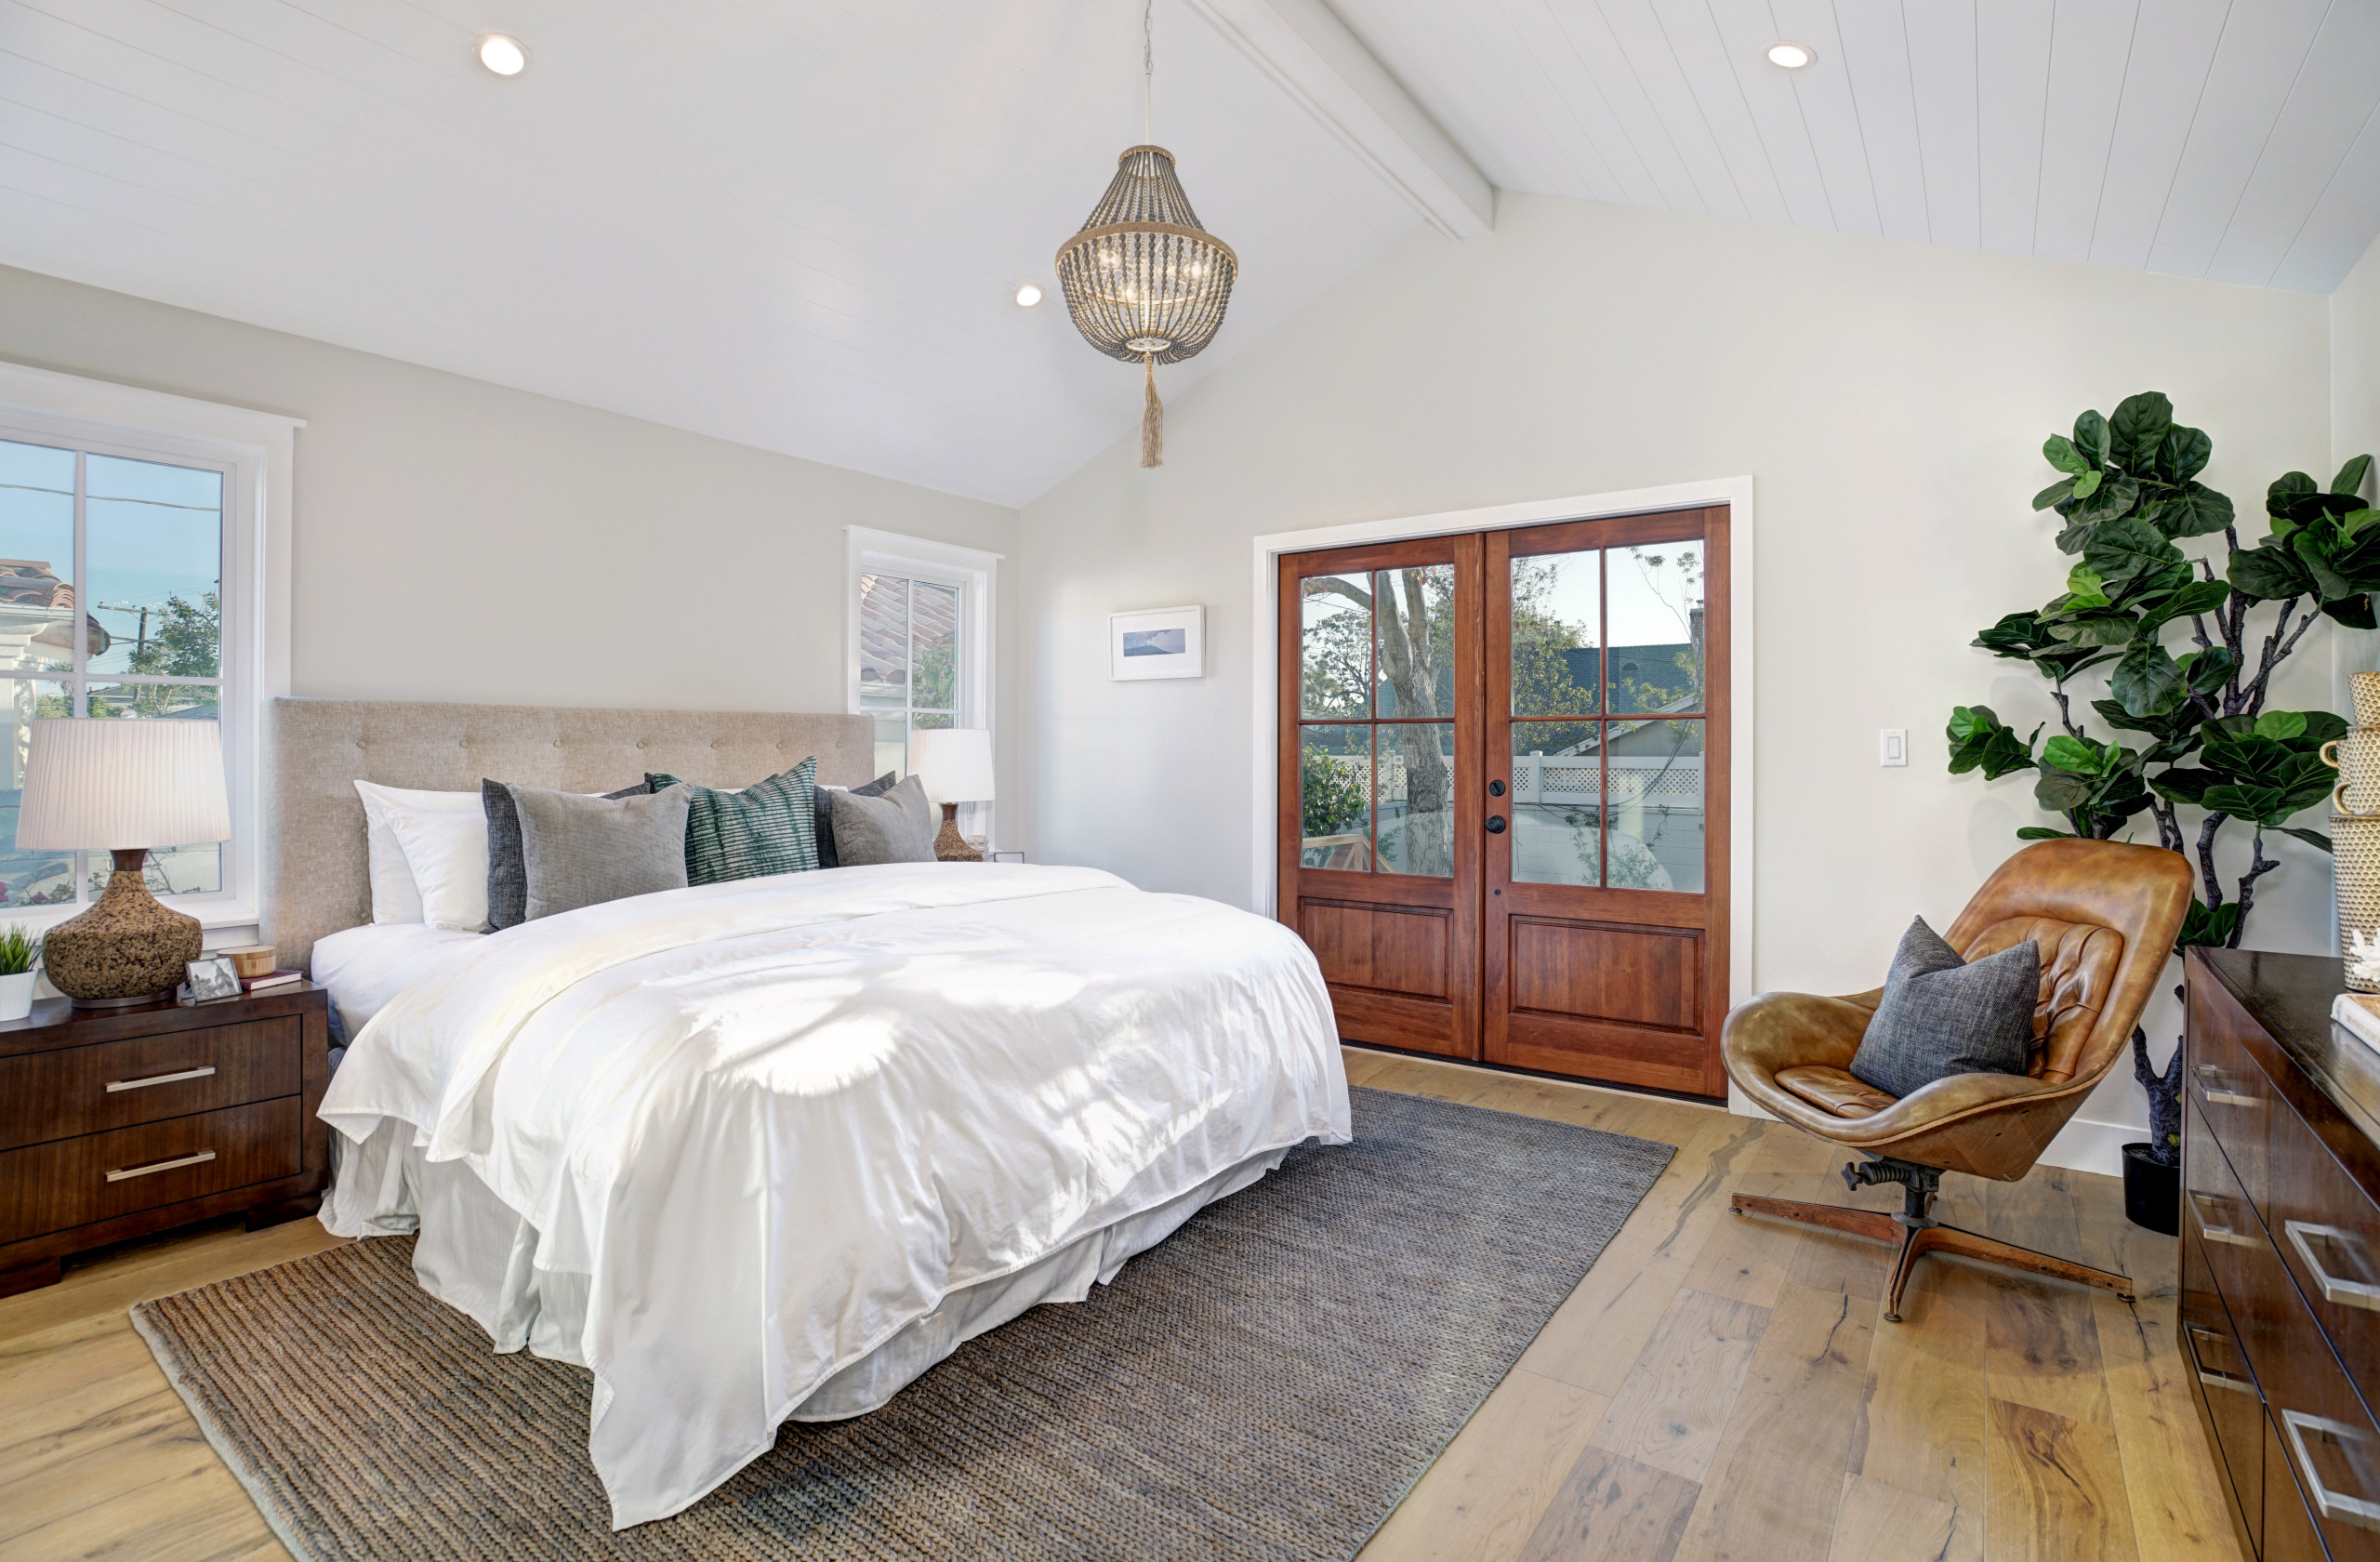 75 Beautiful Bedroom Pictures Ideas March 2021 Houzz